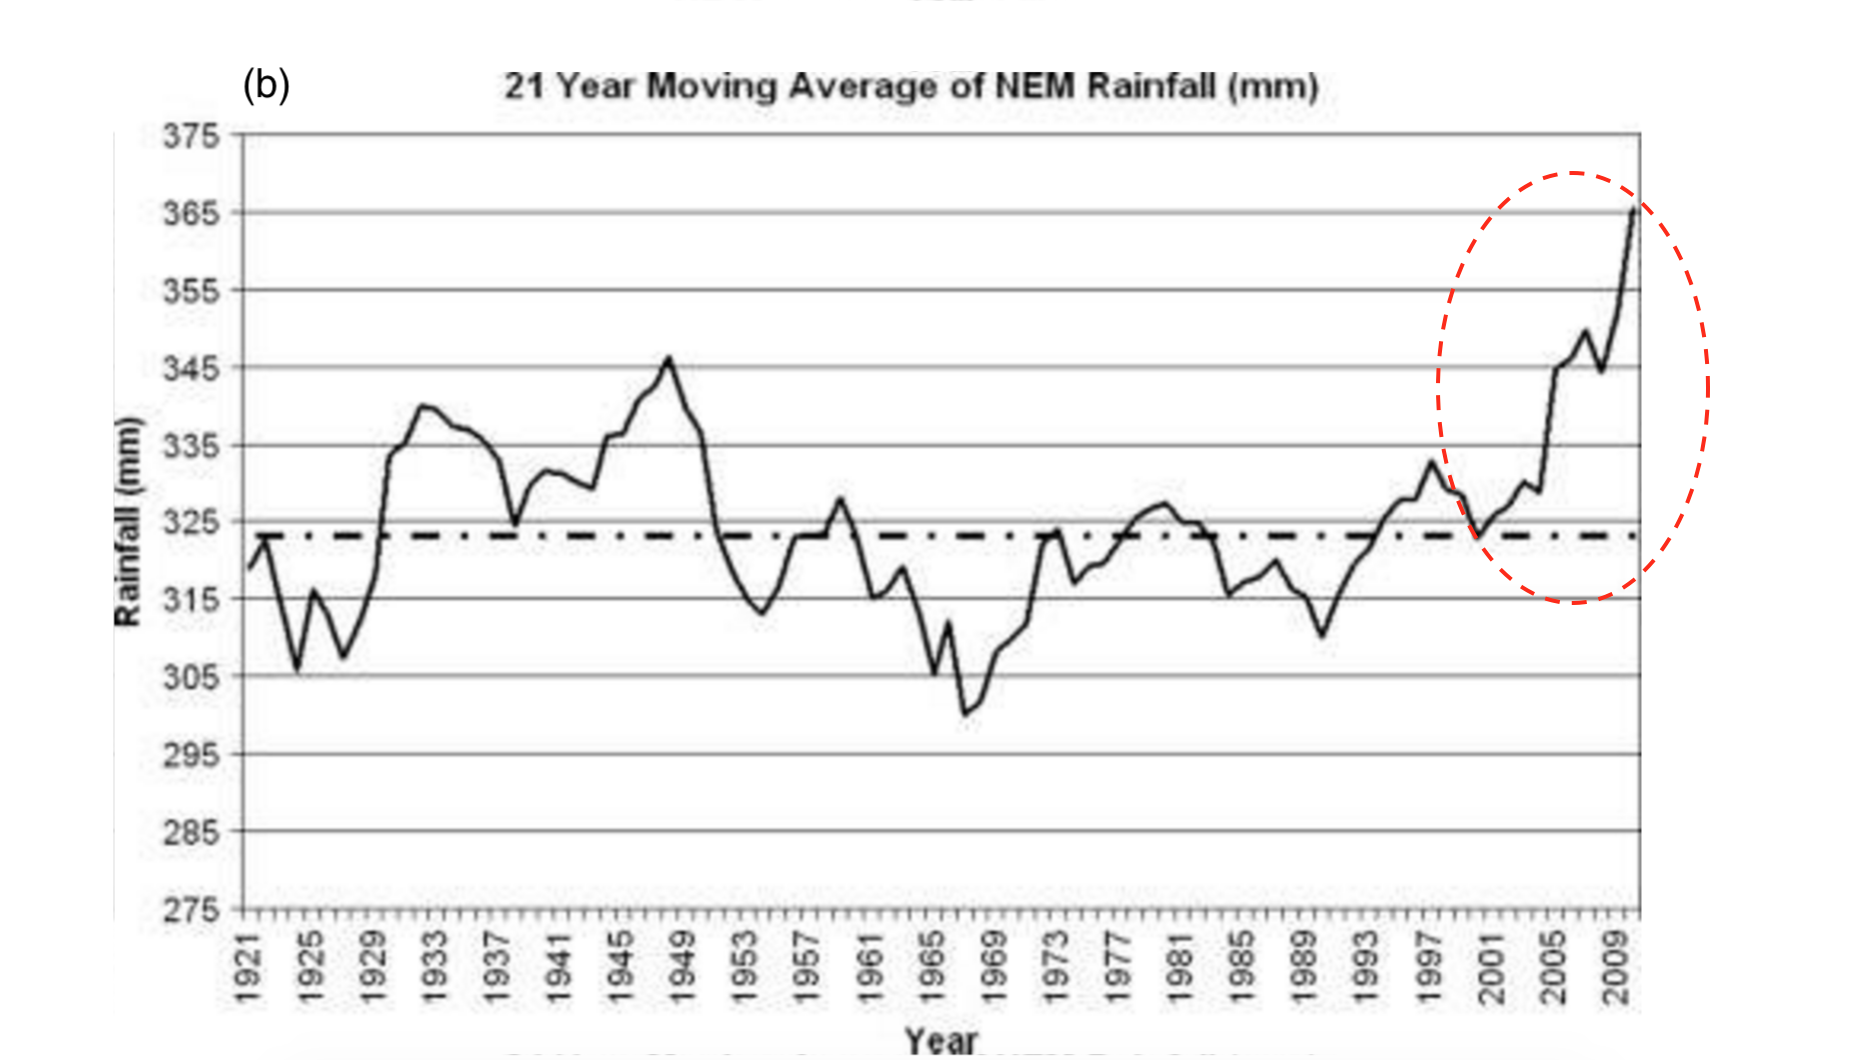 21-year moving average of northeast monsoon (NEM) rainfall during 1901 to 2010. Dashed horizontal line indicates long-term average whereas recent increase in the rainfall is shown by red circle (Source: M Rajeevan et al 2012)